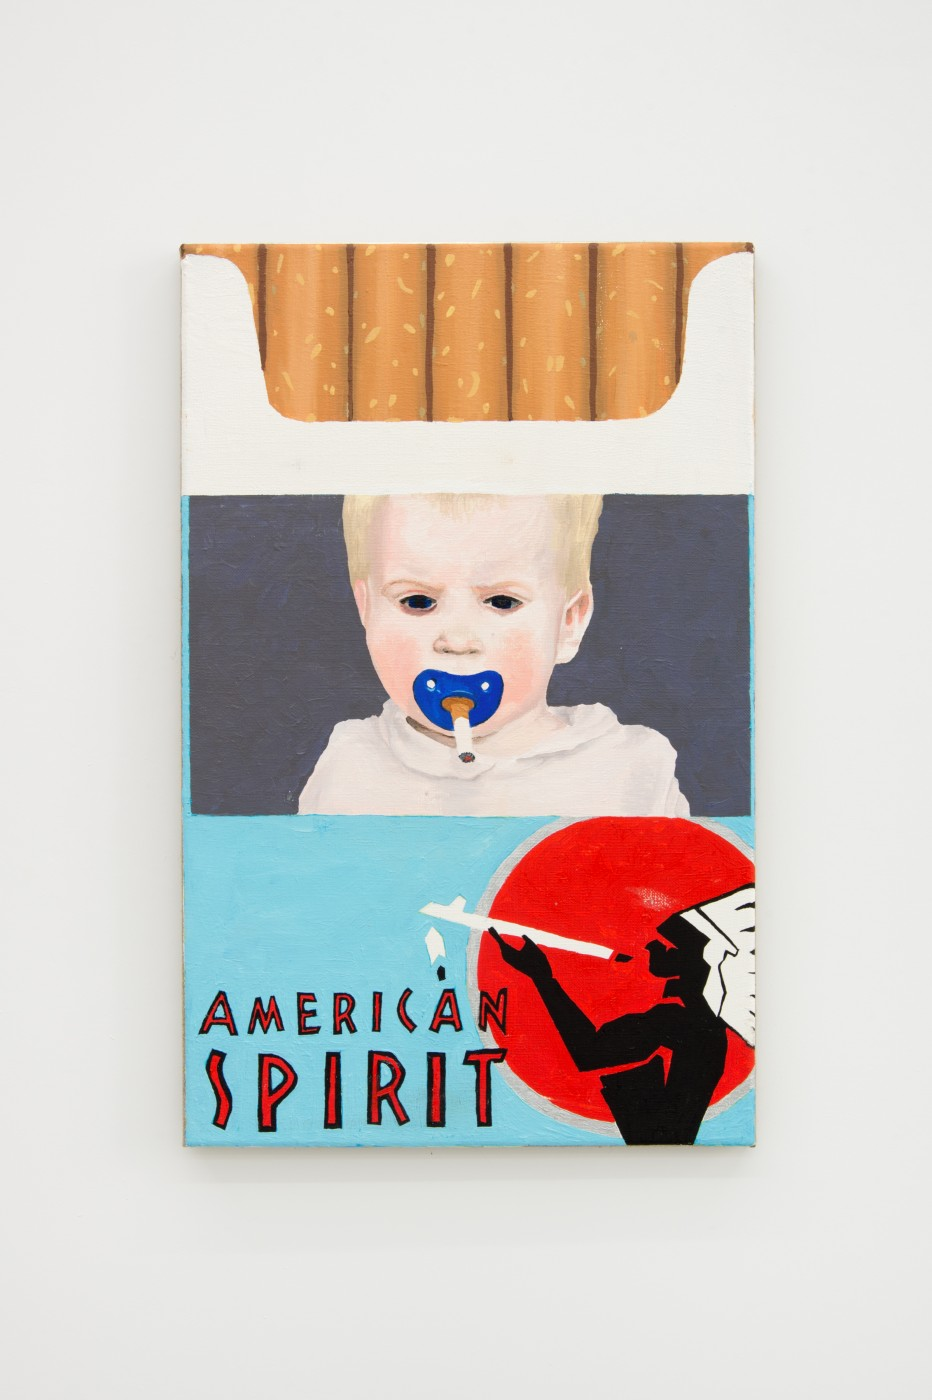 V.S.O.P.  American Spirit</I>, 2017 Oil on linen 60 x 38 cm / 23.6 x 14.9 in  PENTTI MONKKONEN